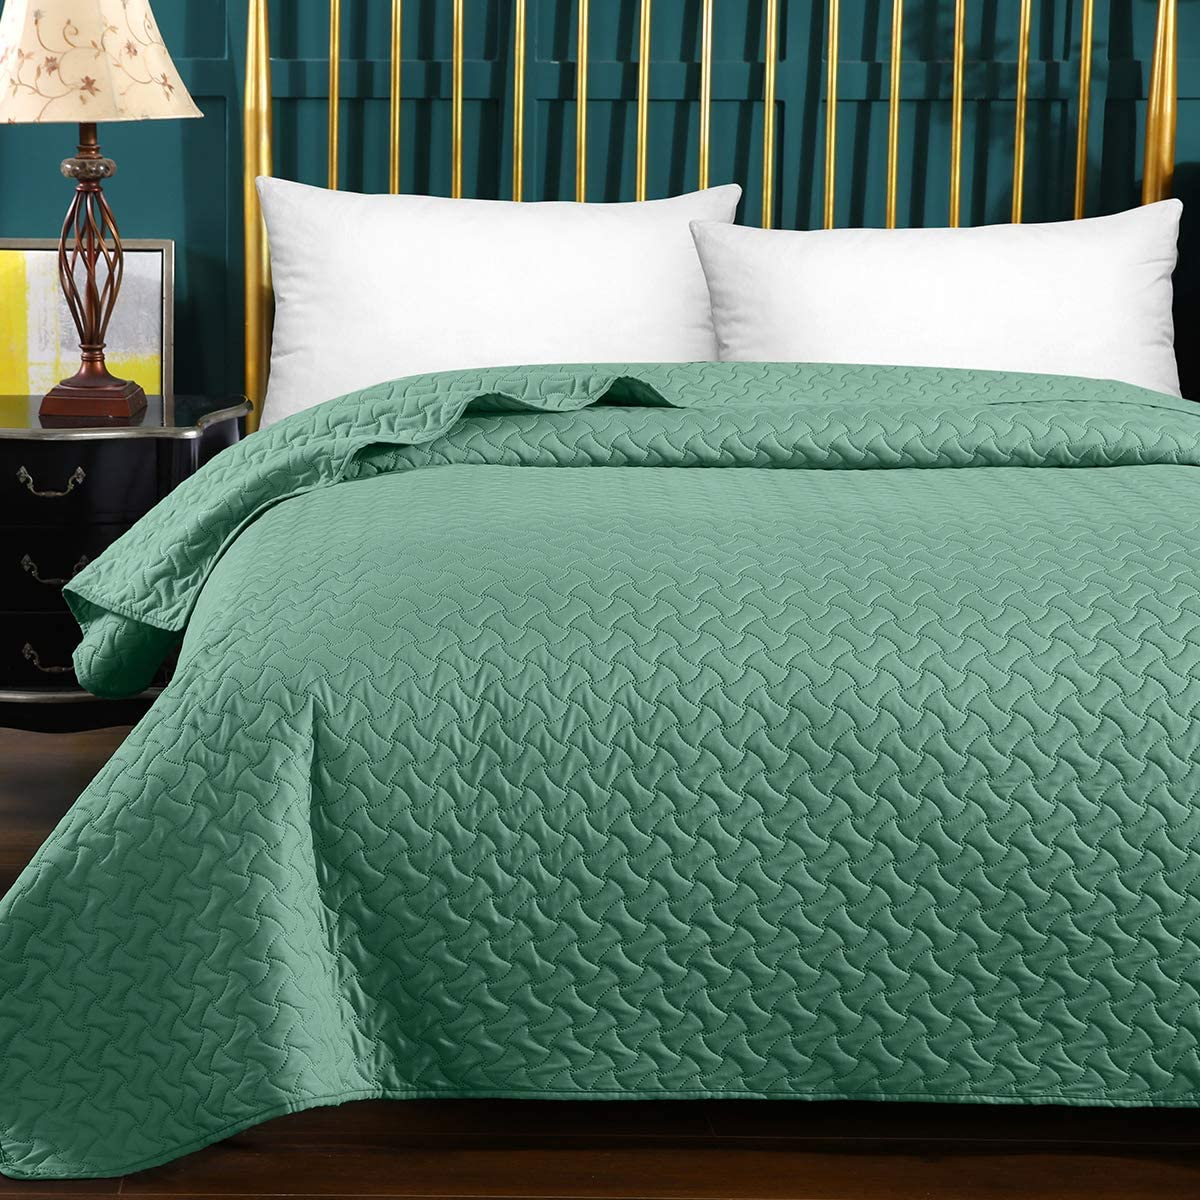 HollyHOME Luxury Checkered Super Soft Solid Single Pinsonic Quilted Bed Quilt Bedspread Bed Cover Twin Blue